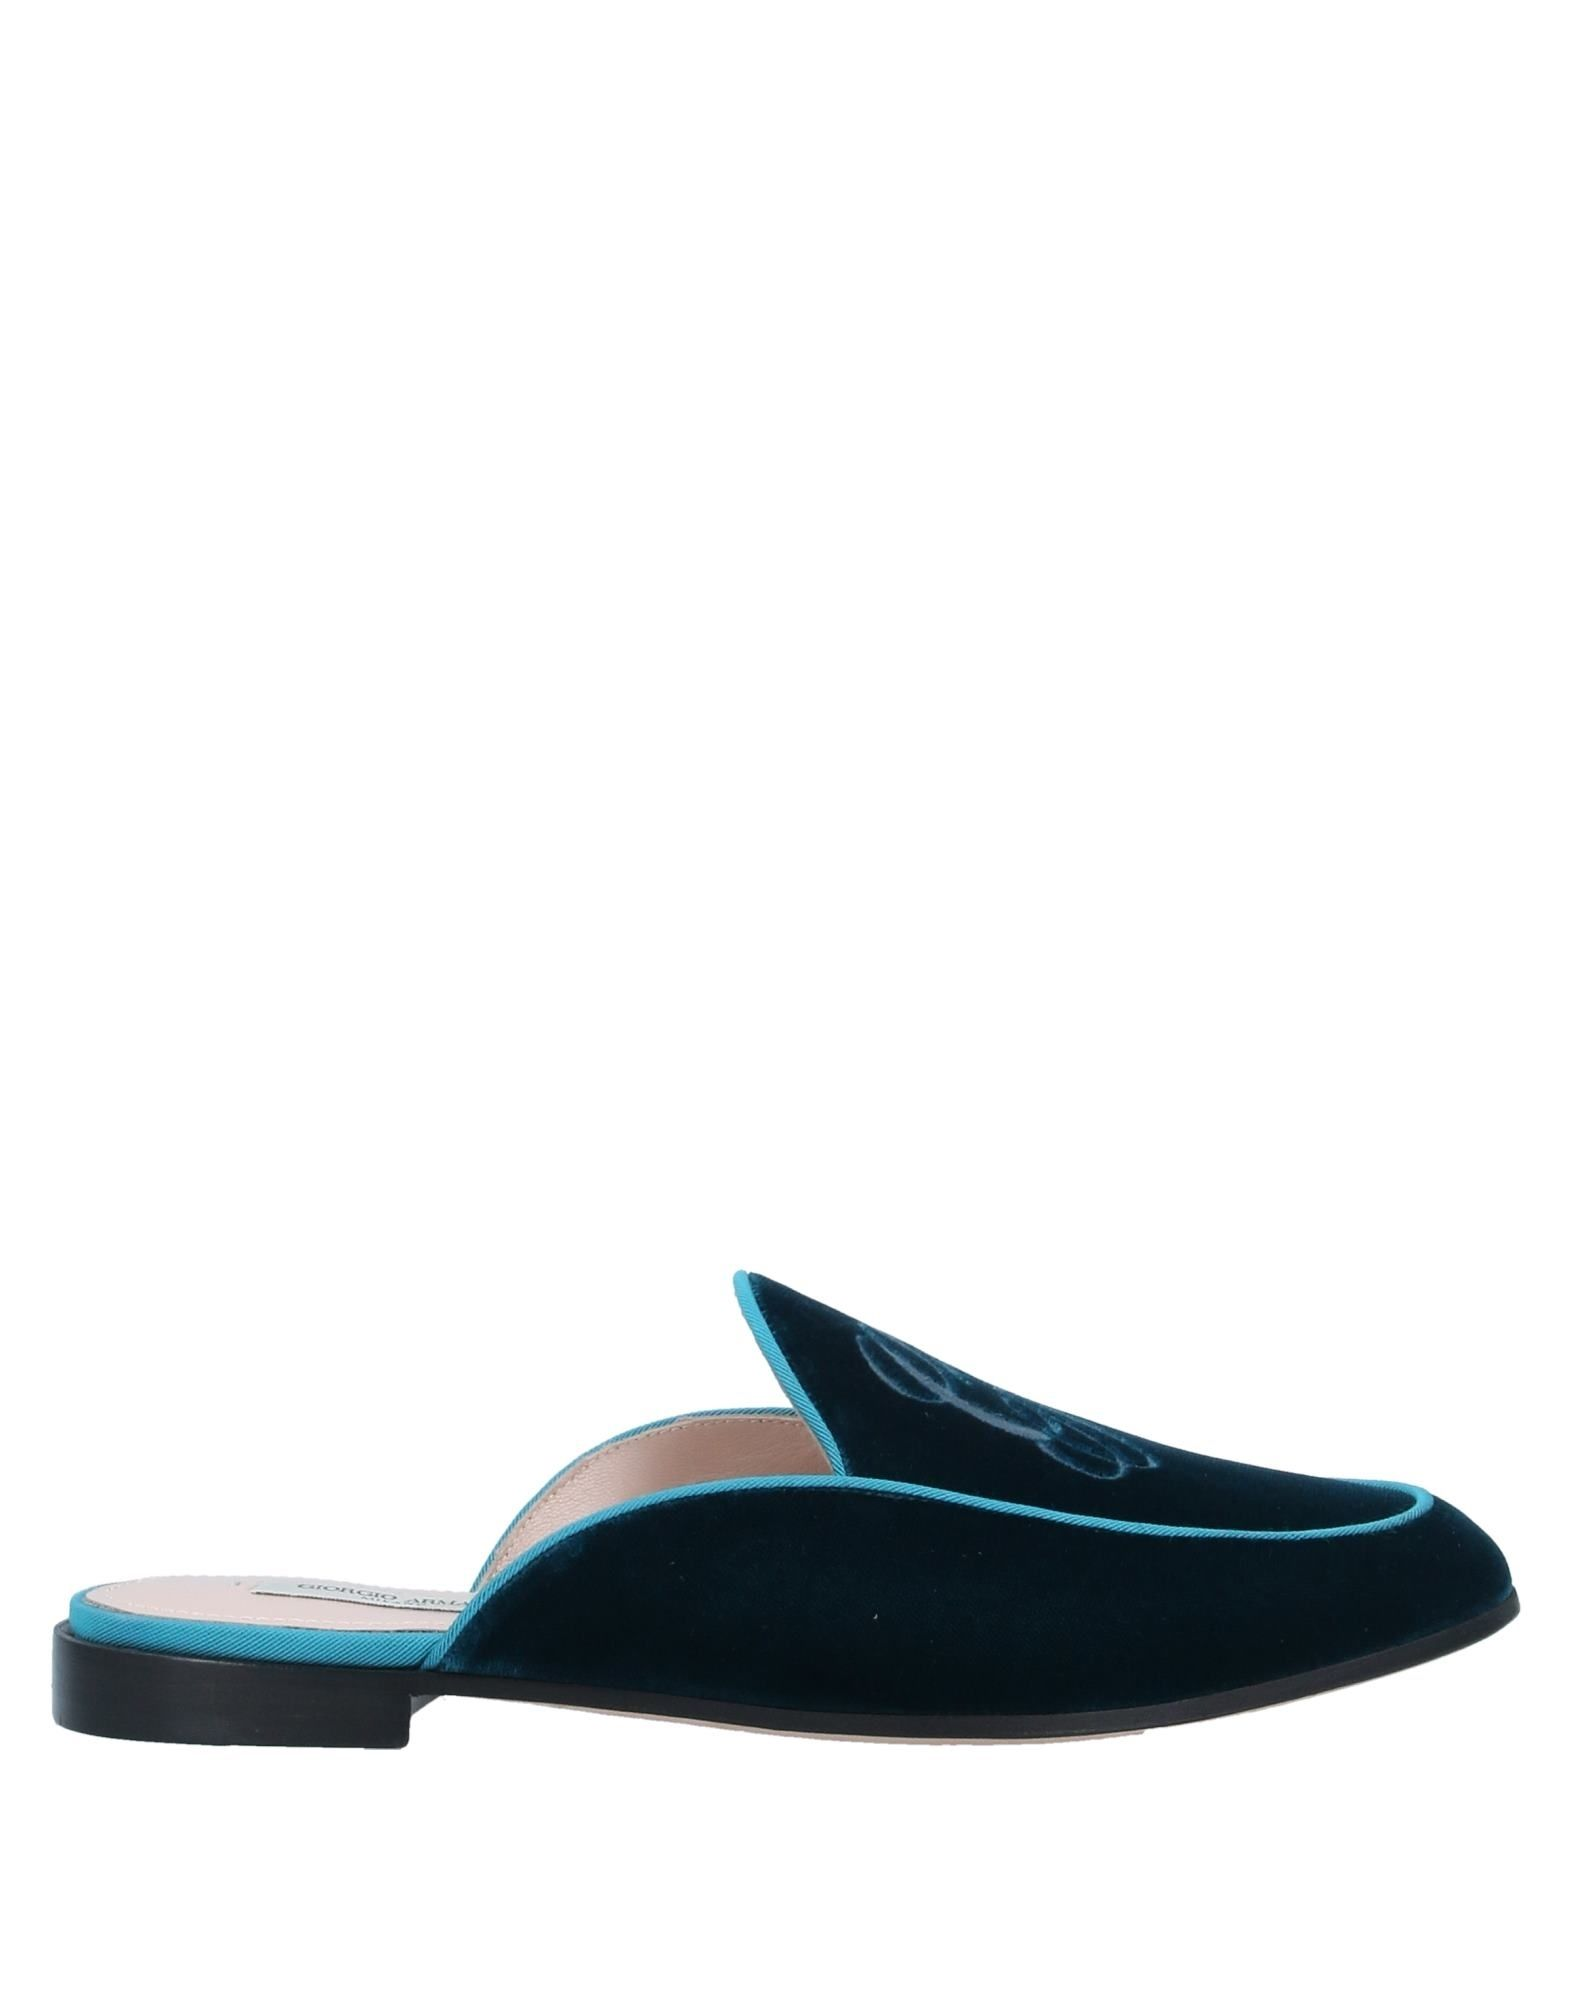 GIORGIO ARMANI Mules. velvet, embroidered detailing, logo, solid color, round toeline, flat, leather lining, leather sole, contains non-textile parts of animal origin. 65% Viscose, 35% Cupro